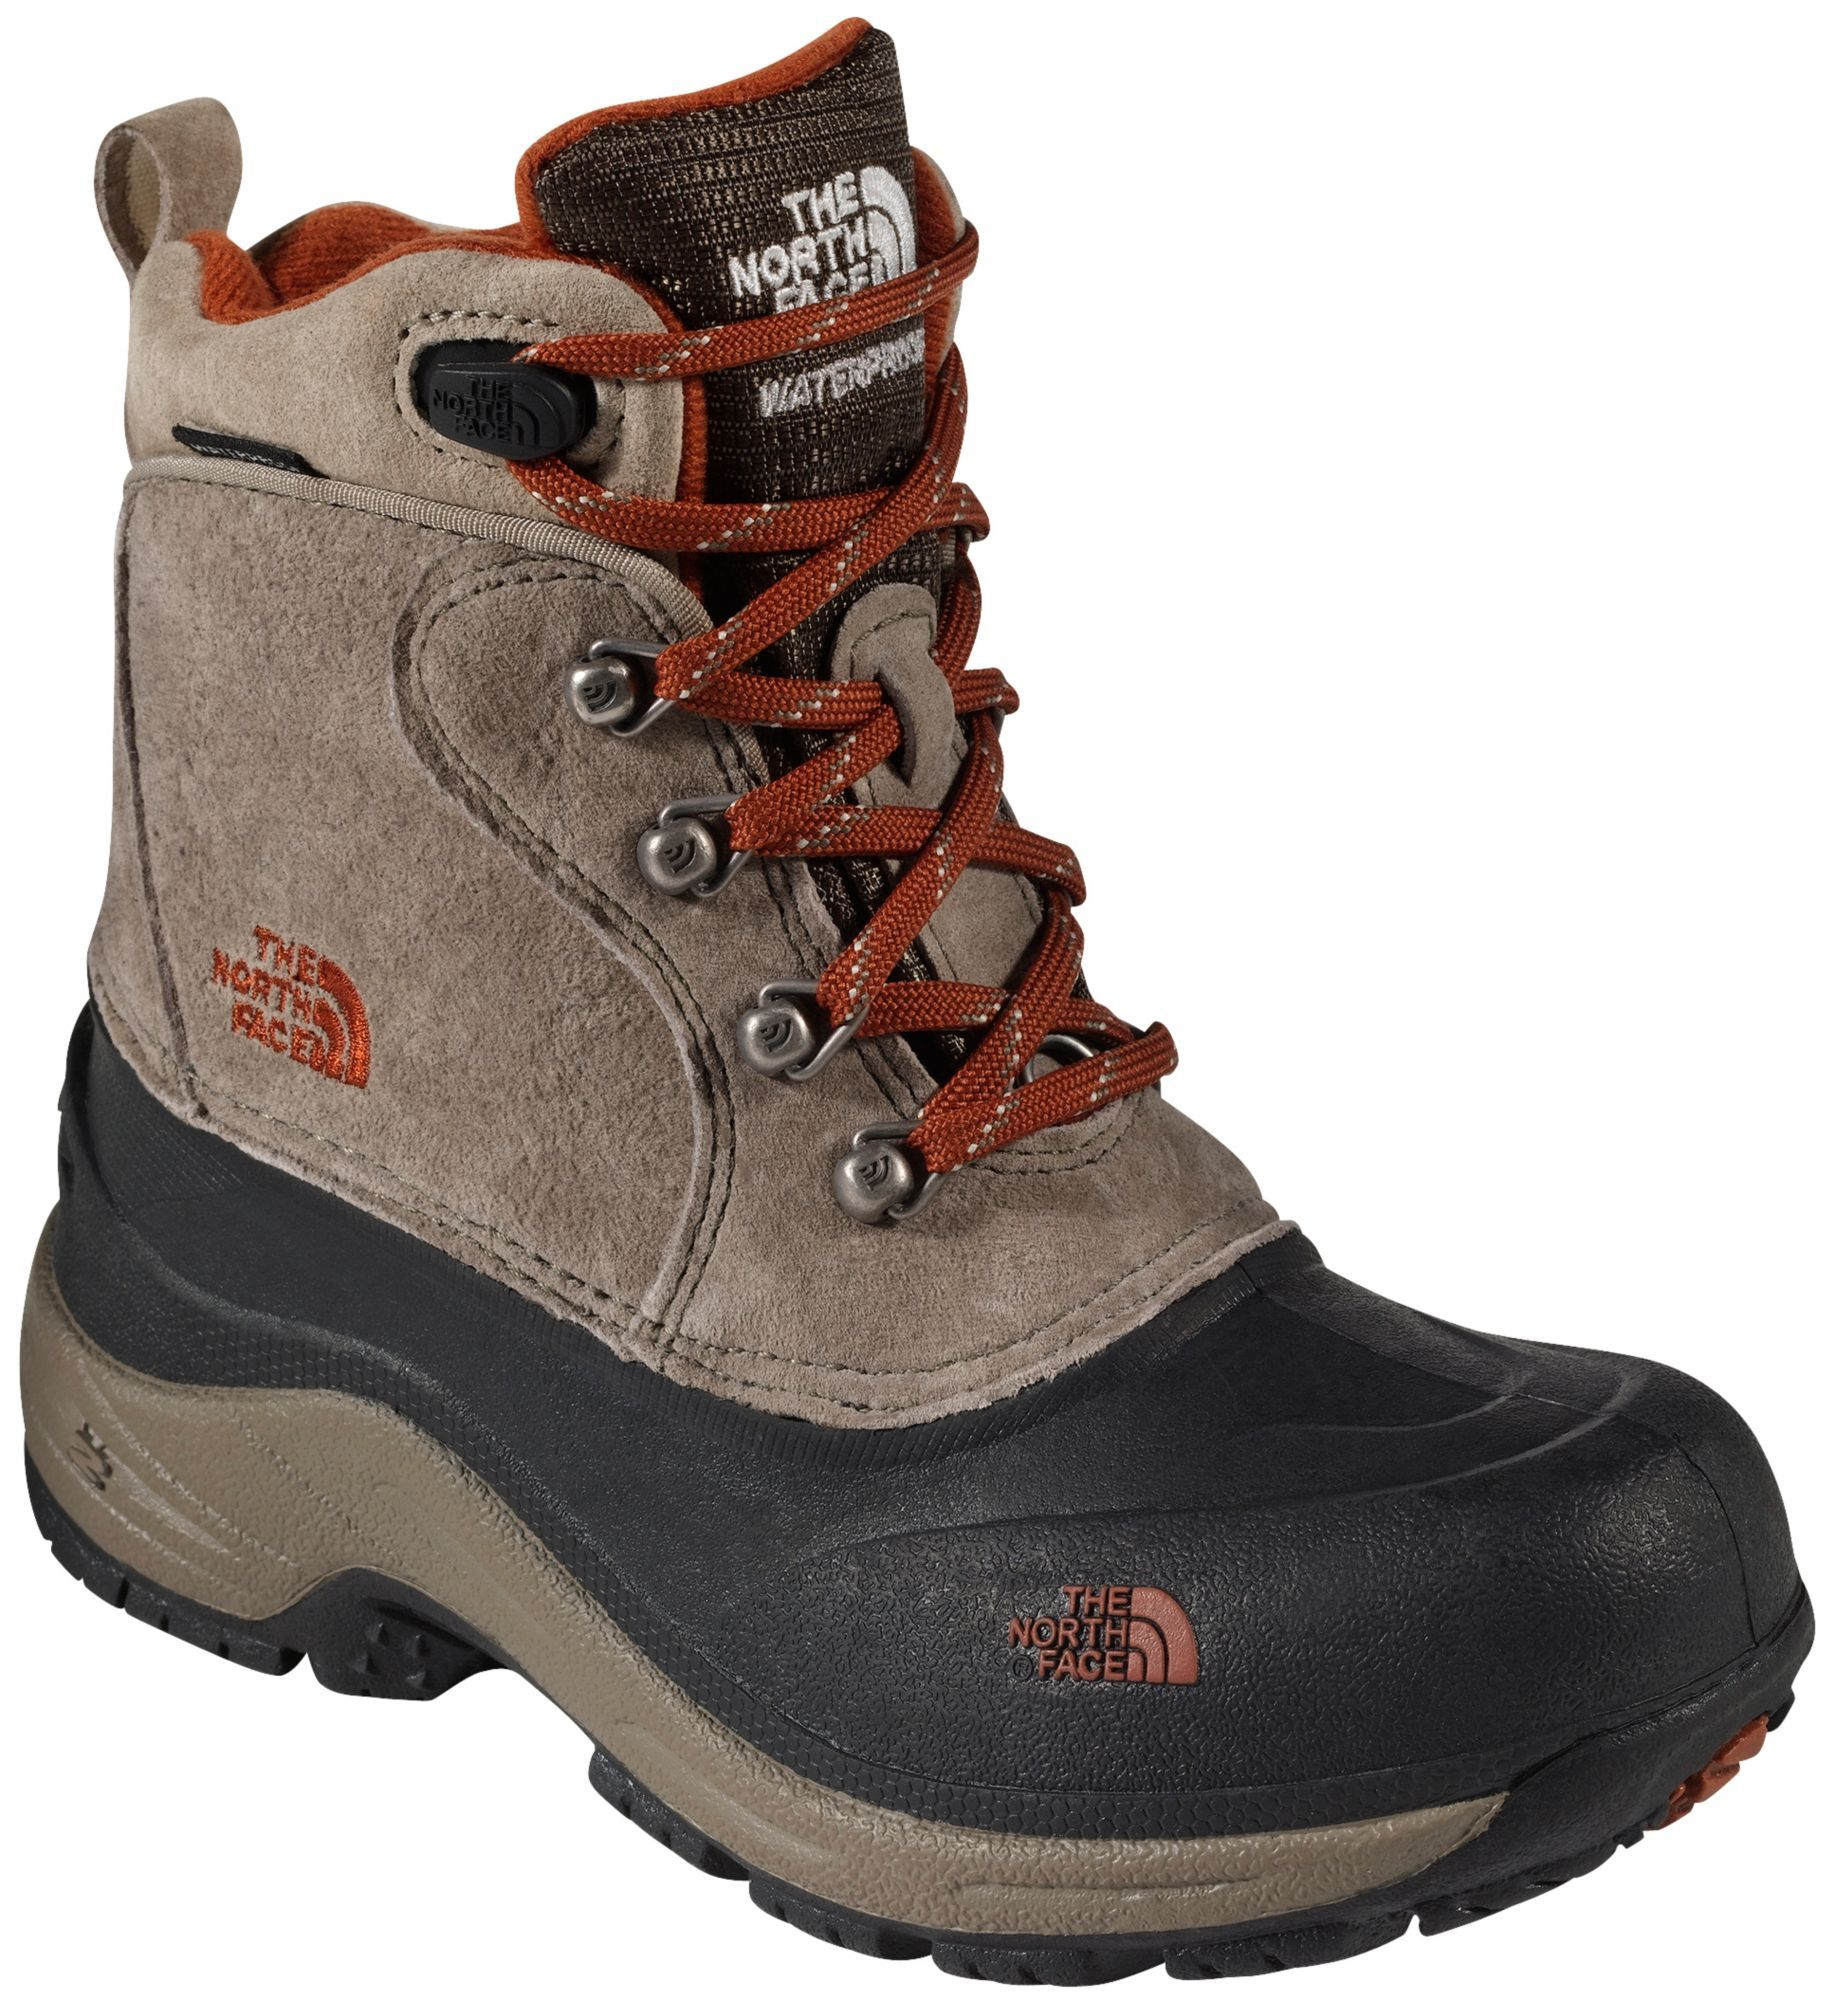 3c40d05dc The North Face Kids' Chilkat Winter Boots | Products | Boys winter ...